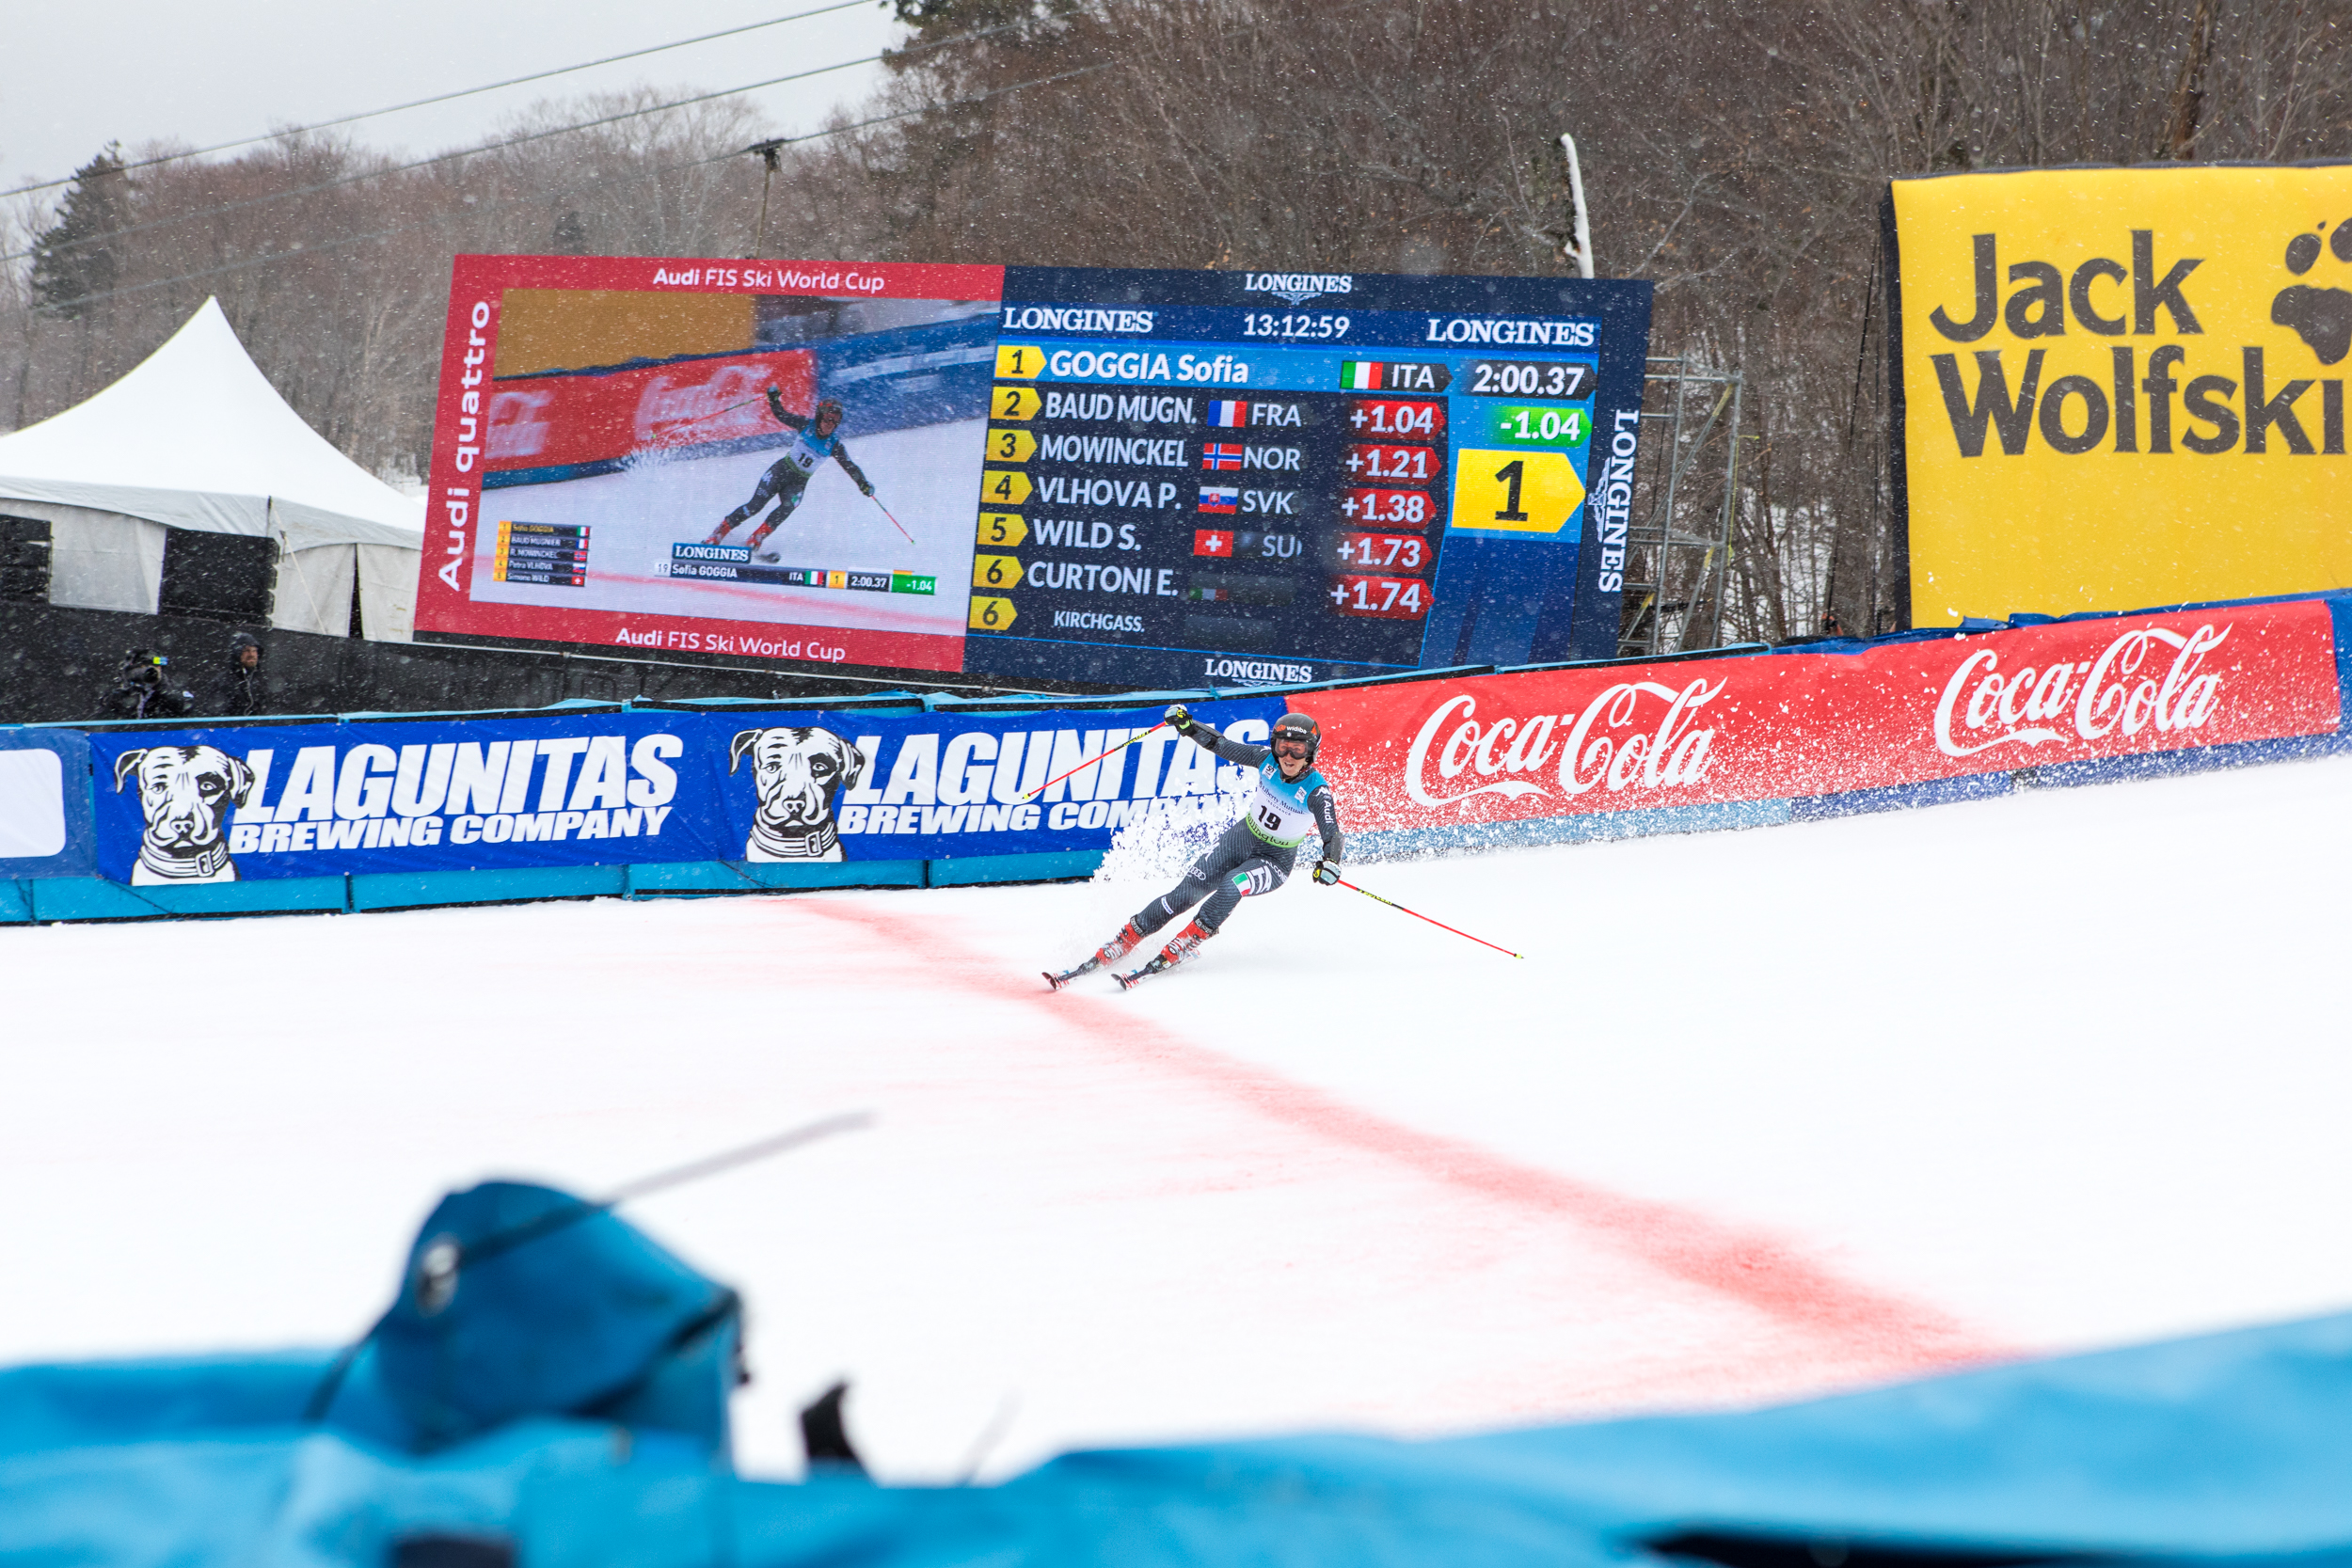 Killington-World-Cup-Sofia-Goggia.jpg